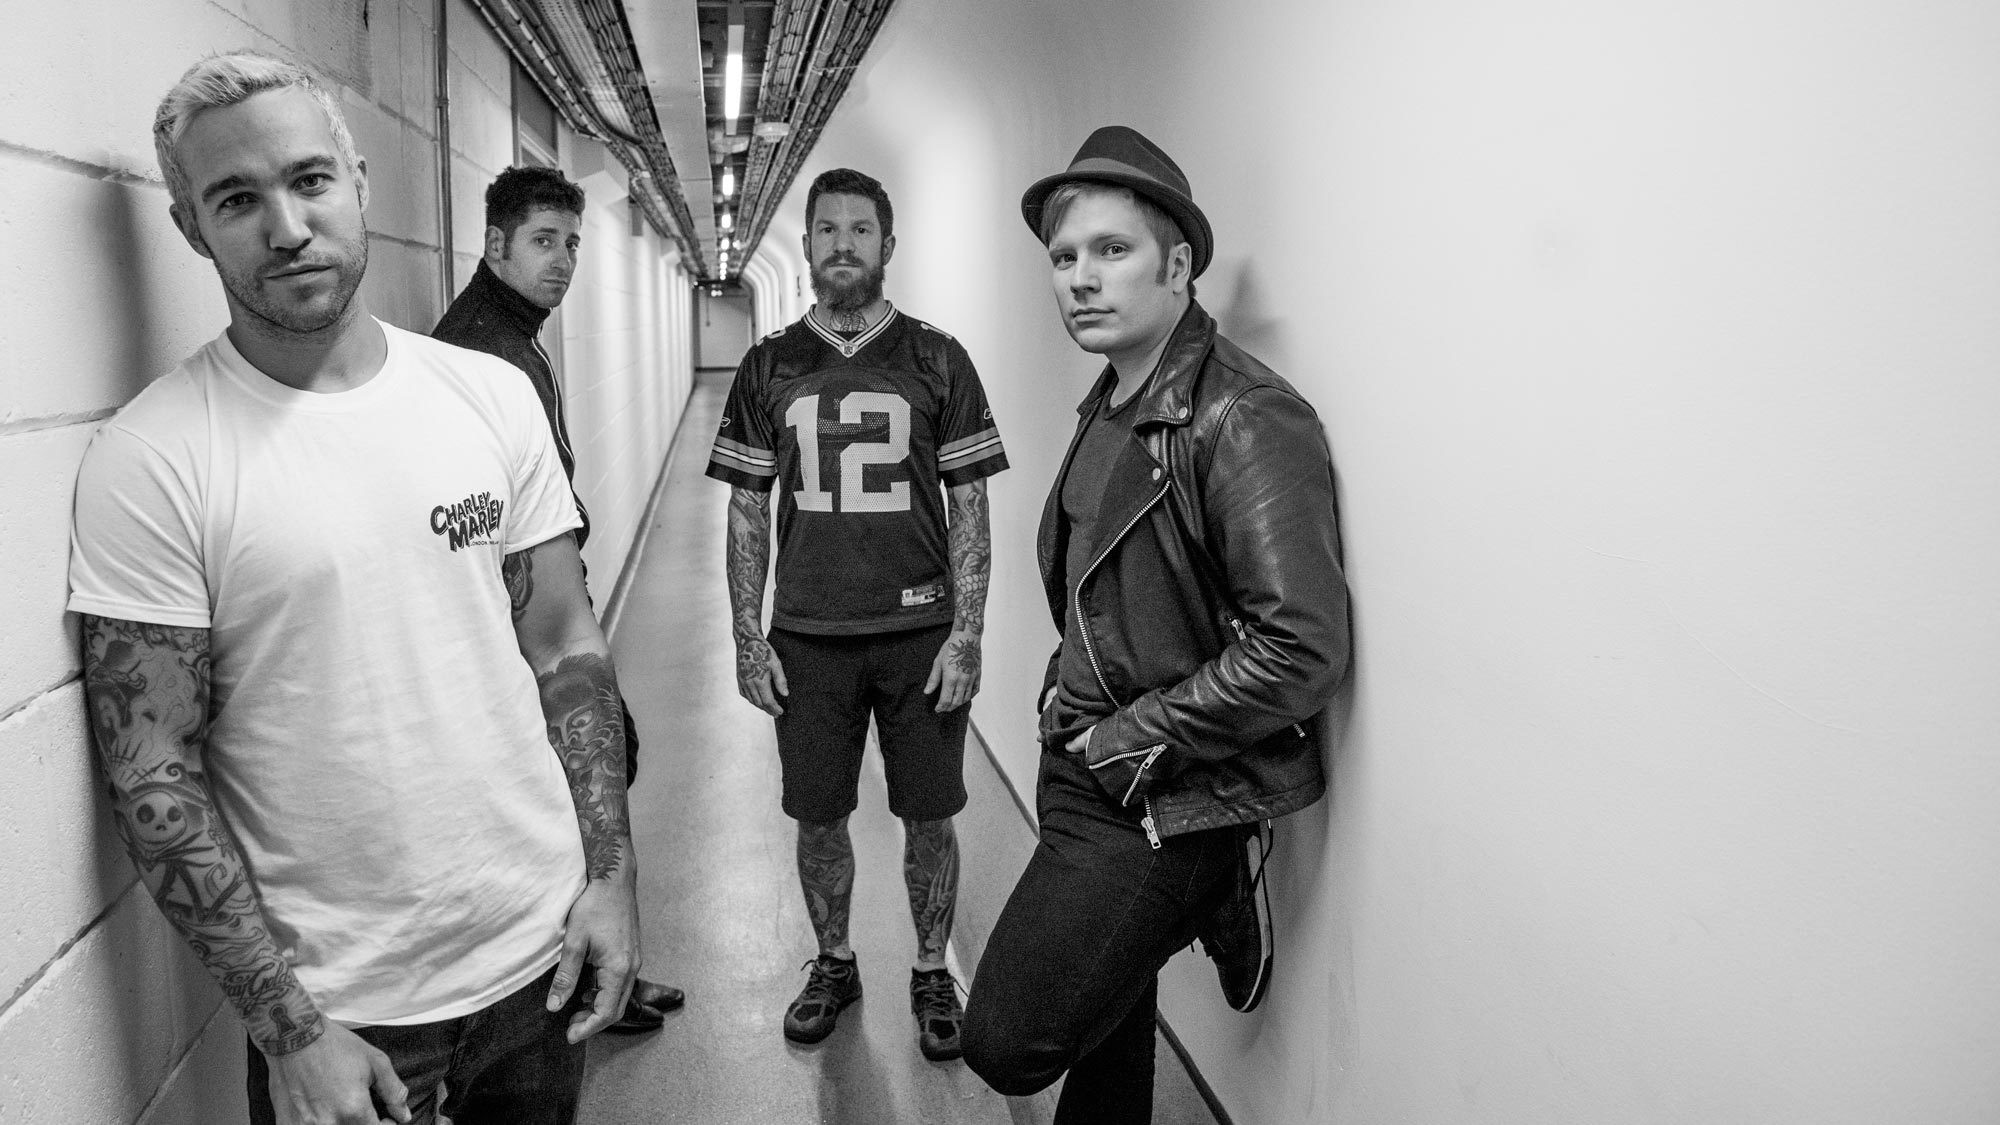 Fall Out Boy Wallpaper Hd 74 Images